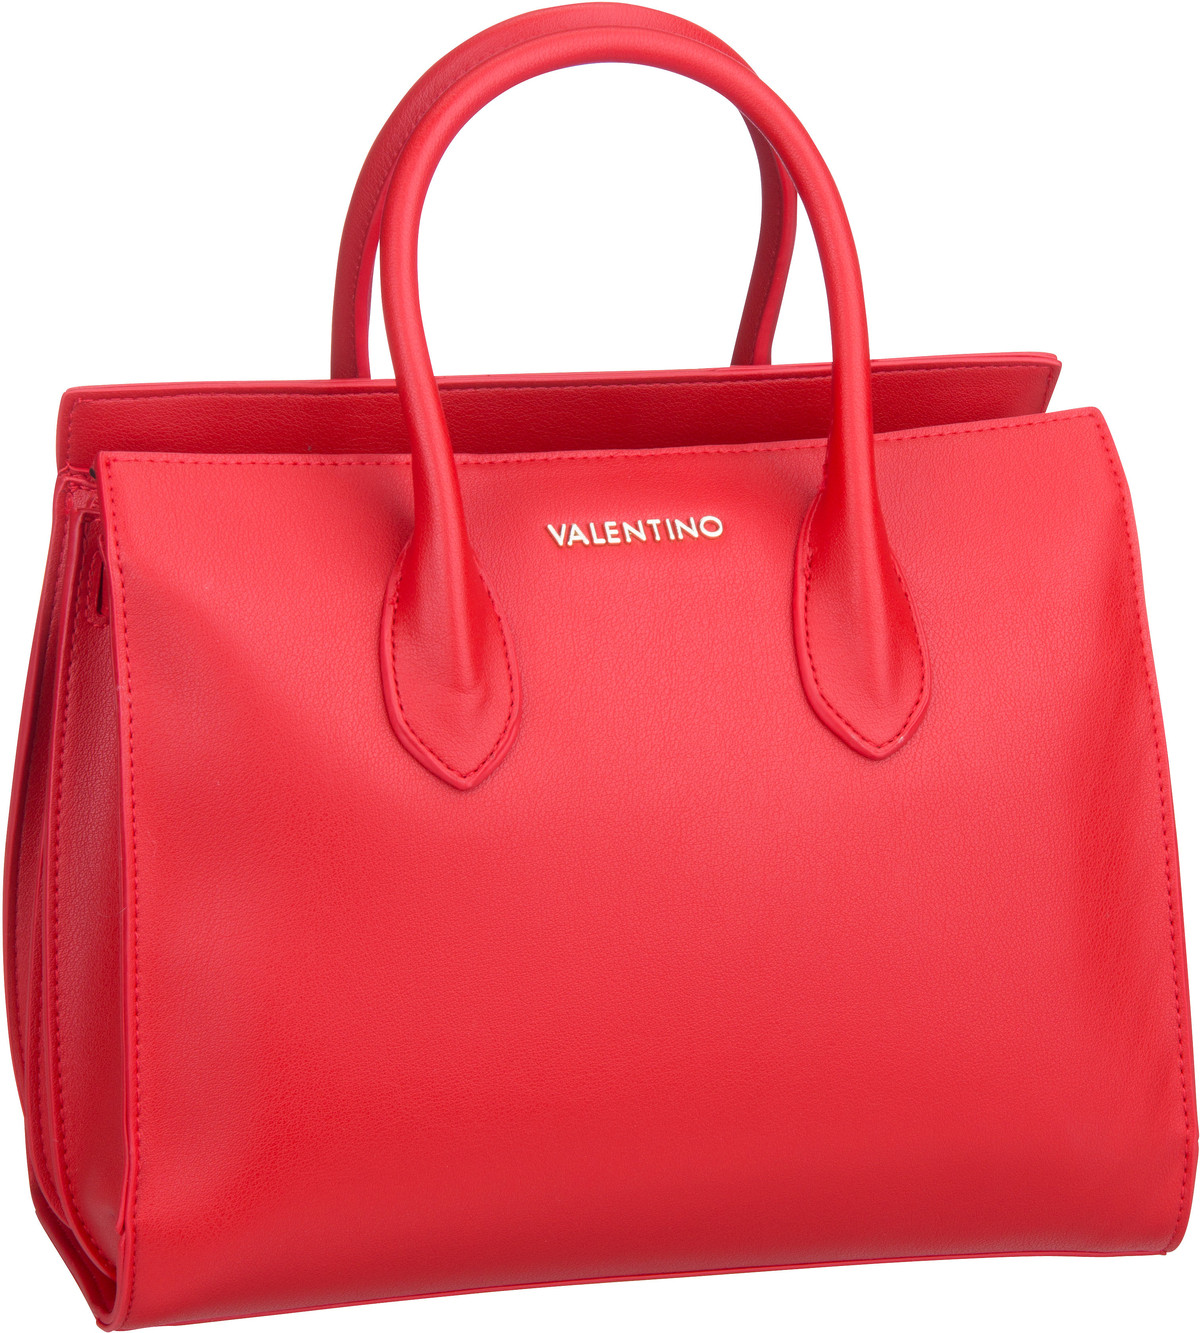 Bags Handtasche Memento Shopping M01 Rosso